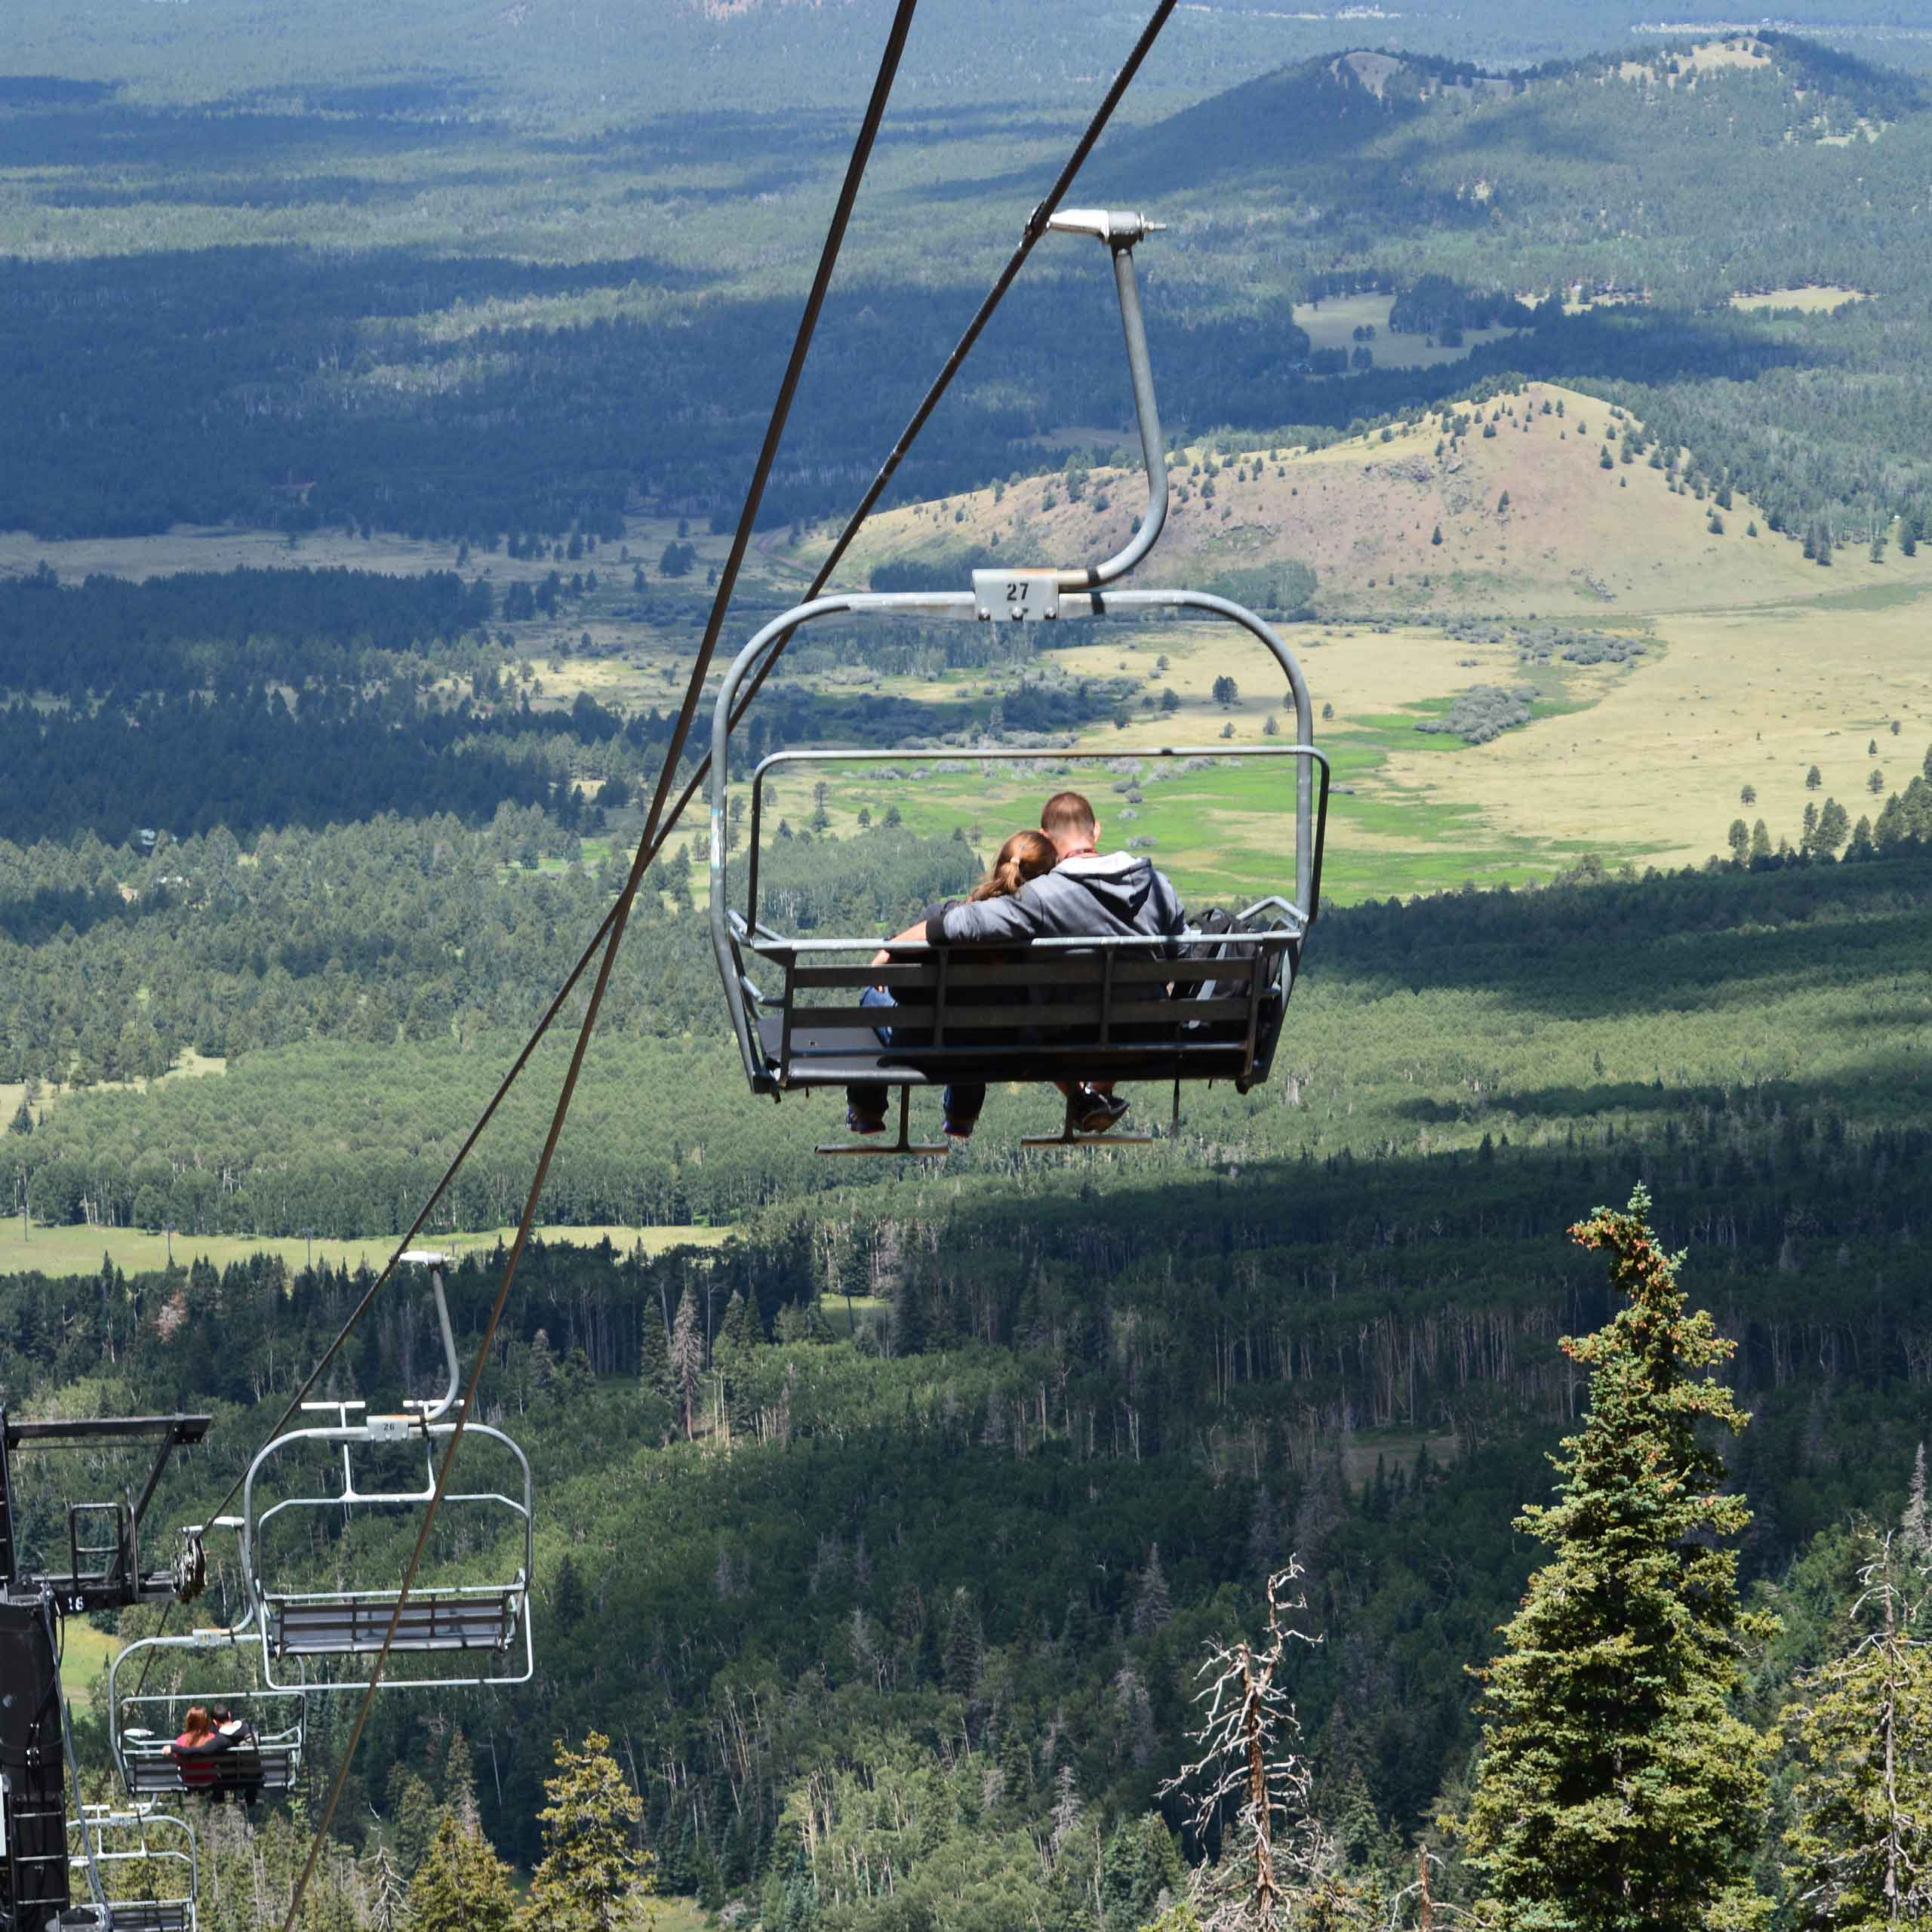 "Escape the summer heat and relax at the top of Arizona! Let the <a href=""http://arizonasnowbowl.com/?q=node/64"">Snowbowl</a> summer scenic chairlift take you to 11,500 feet for the panoramic scenery and breathtaking views. Open 10 a.m. – 4 p.m. on Fridays, Saturdays, Sundays and Mondays until mid-October."